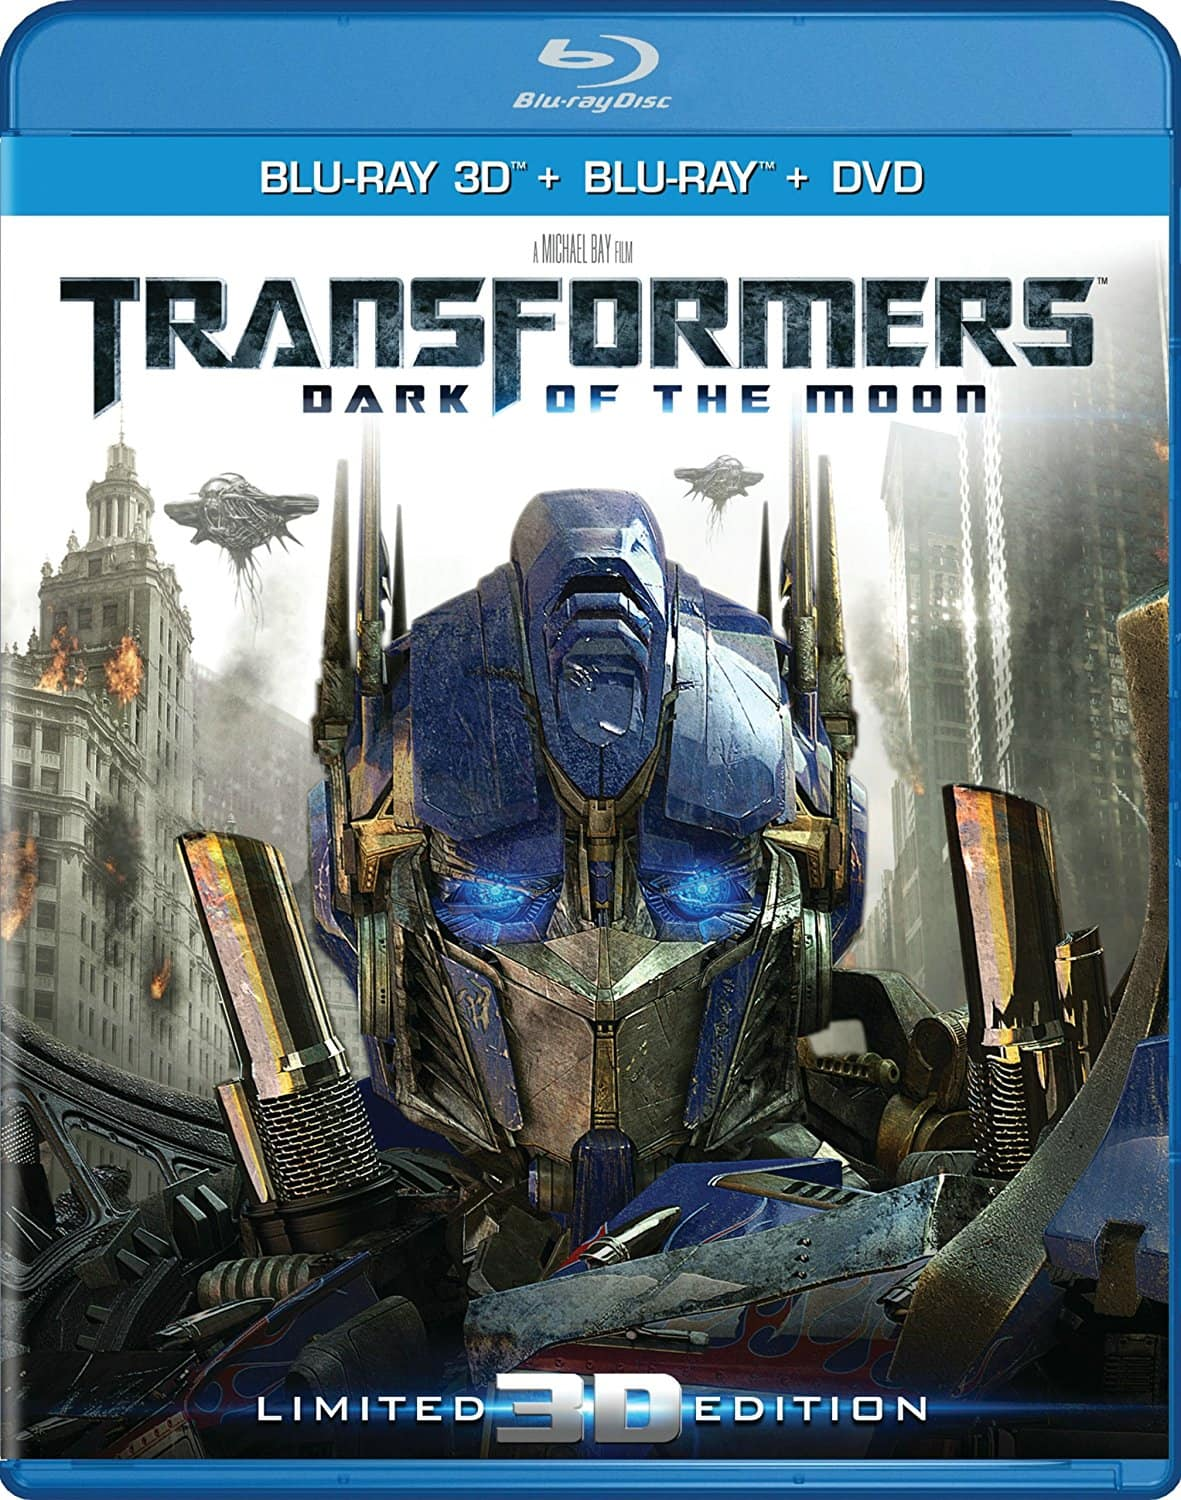 3D Blu-ray Movies: Transformers: Dark of the Moon & Terminator Genisys & more $9.99 each at Amazon